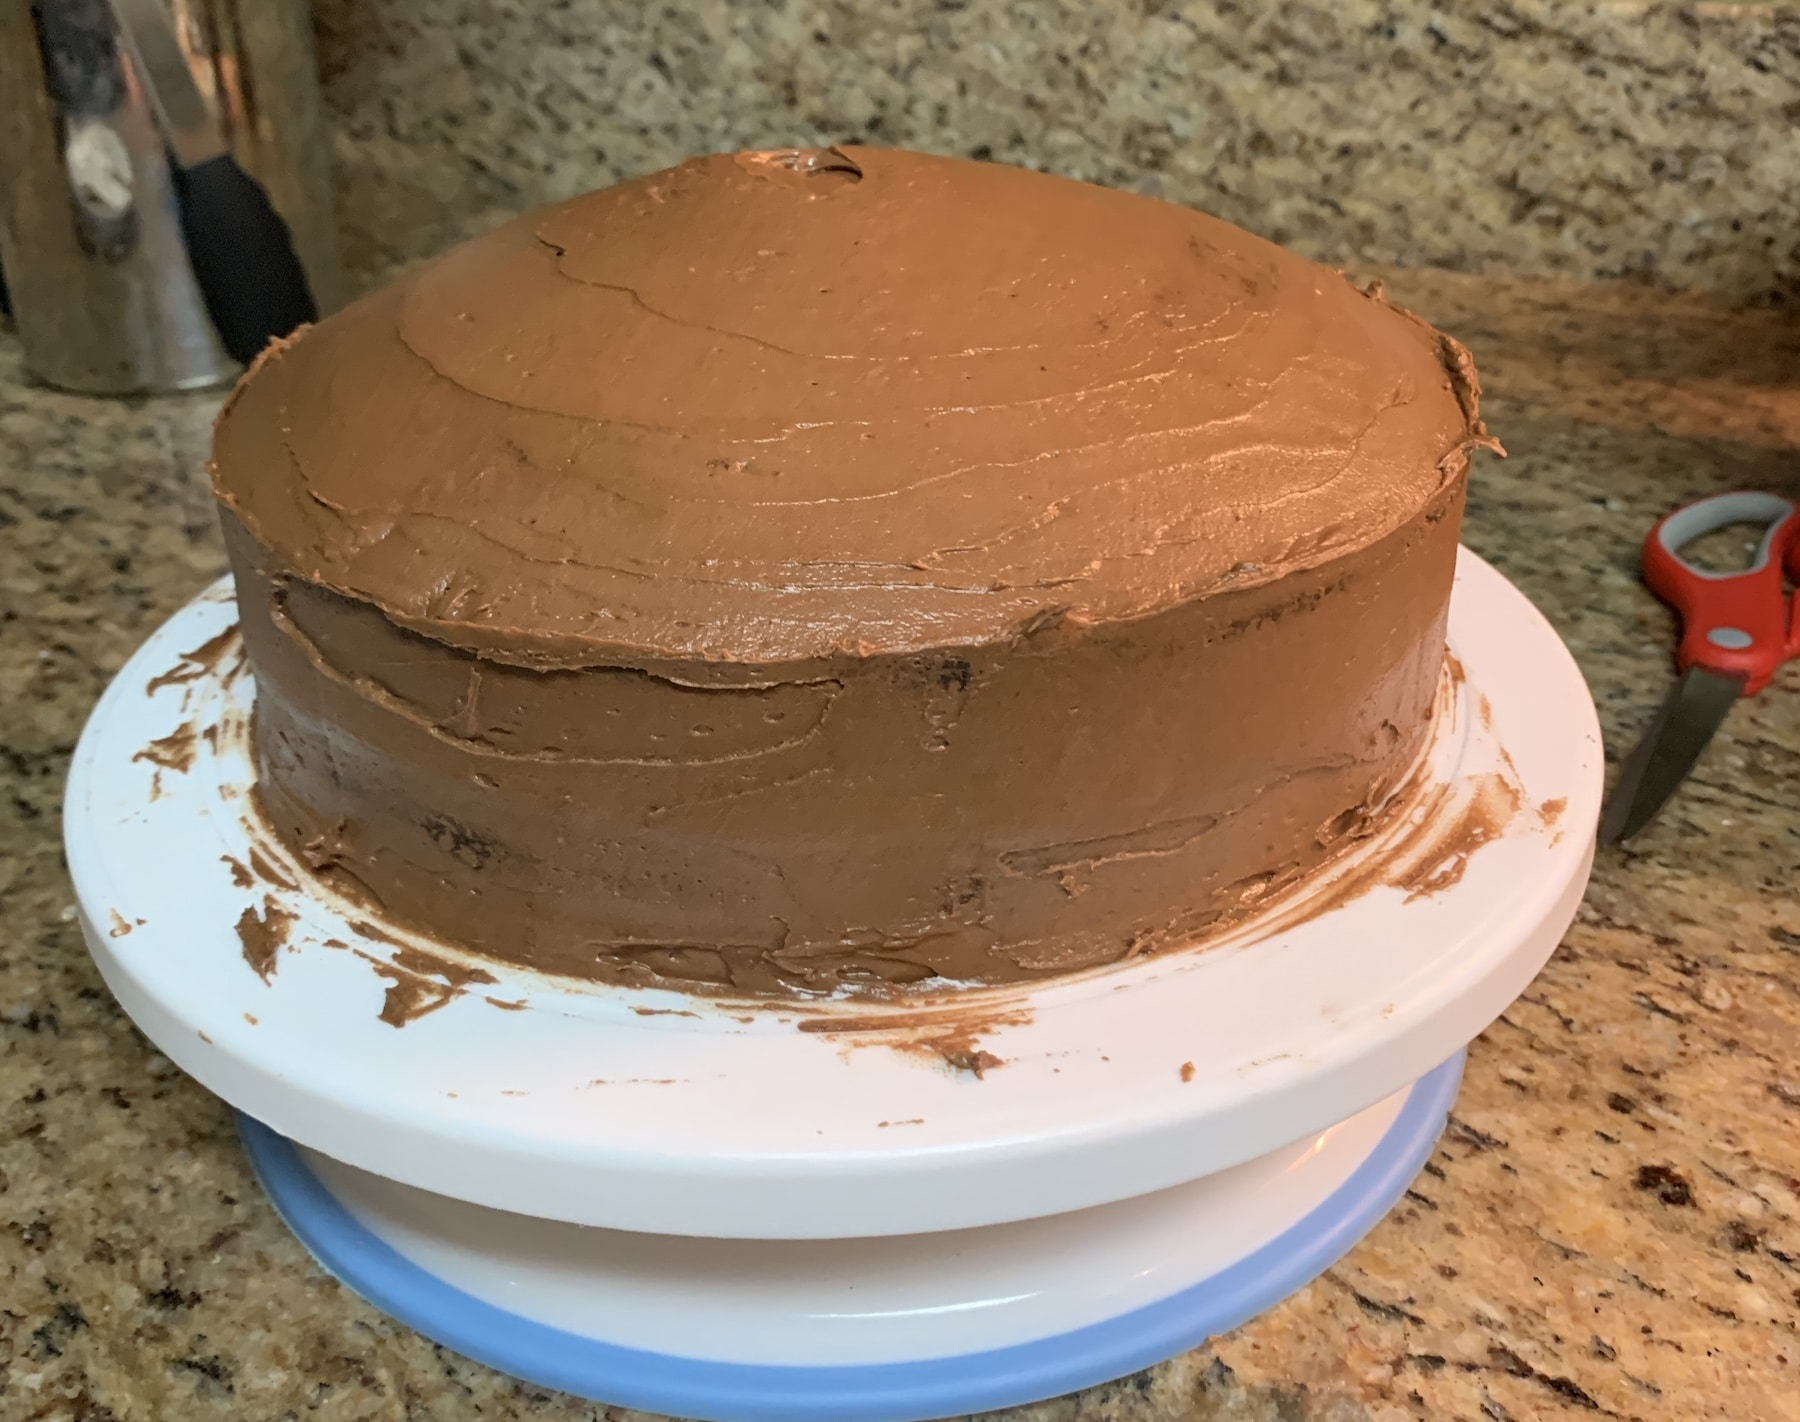 Freshly frosted cake